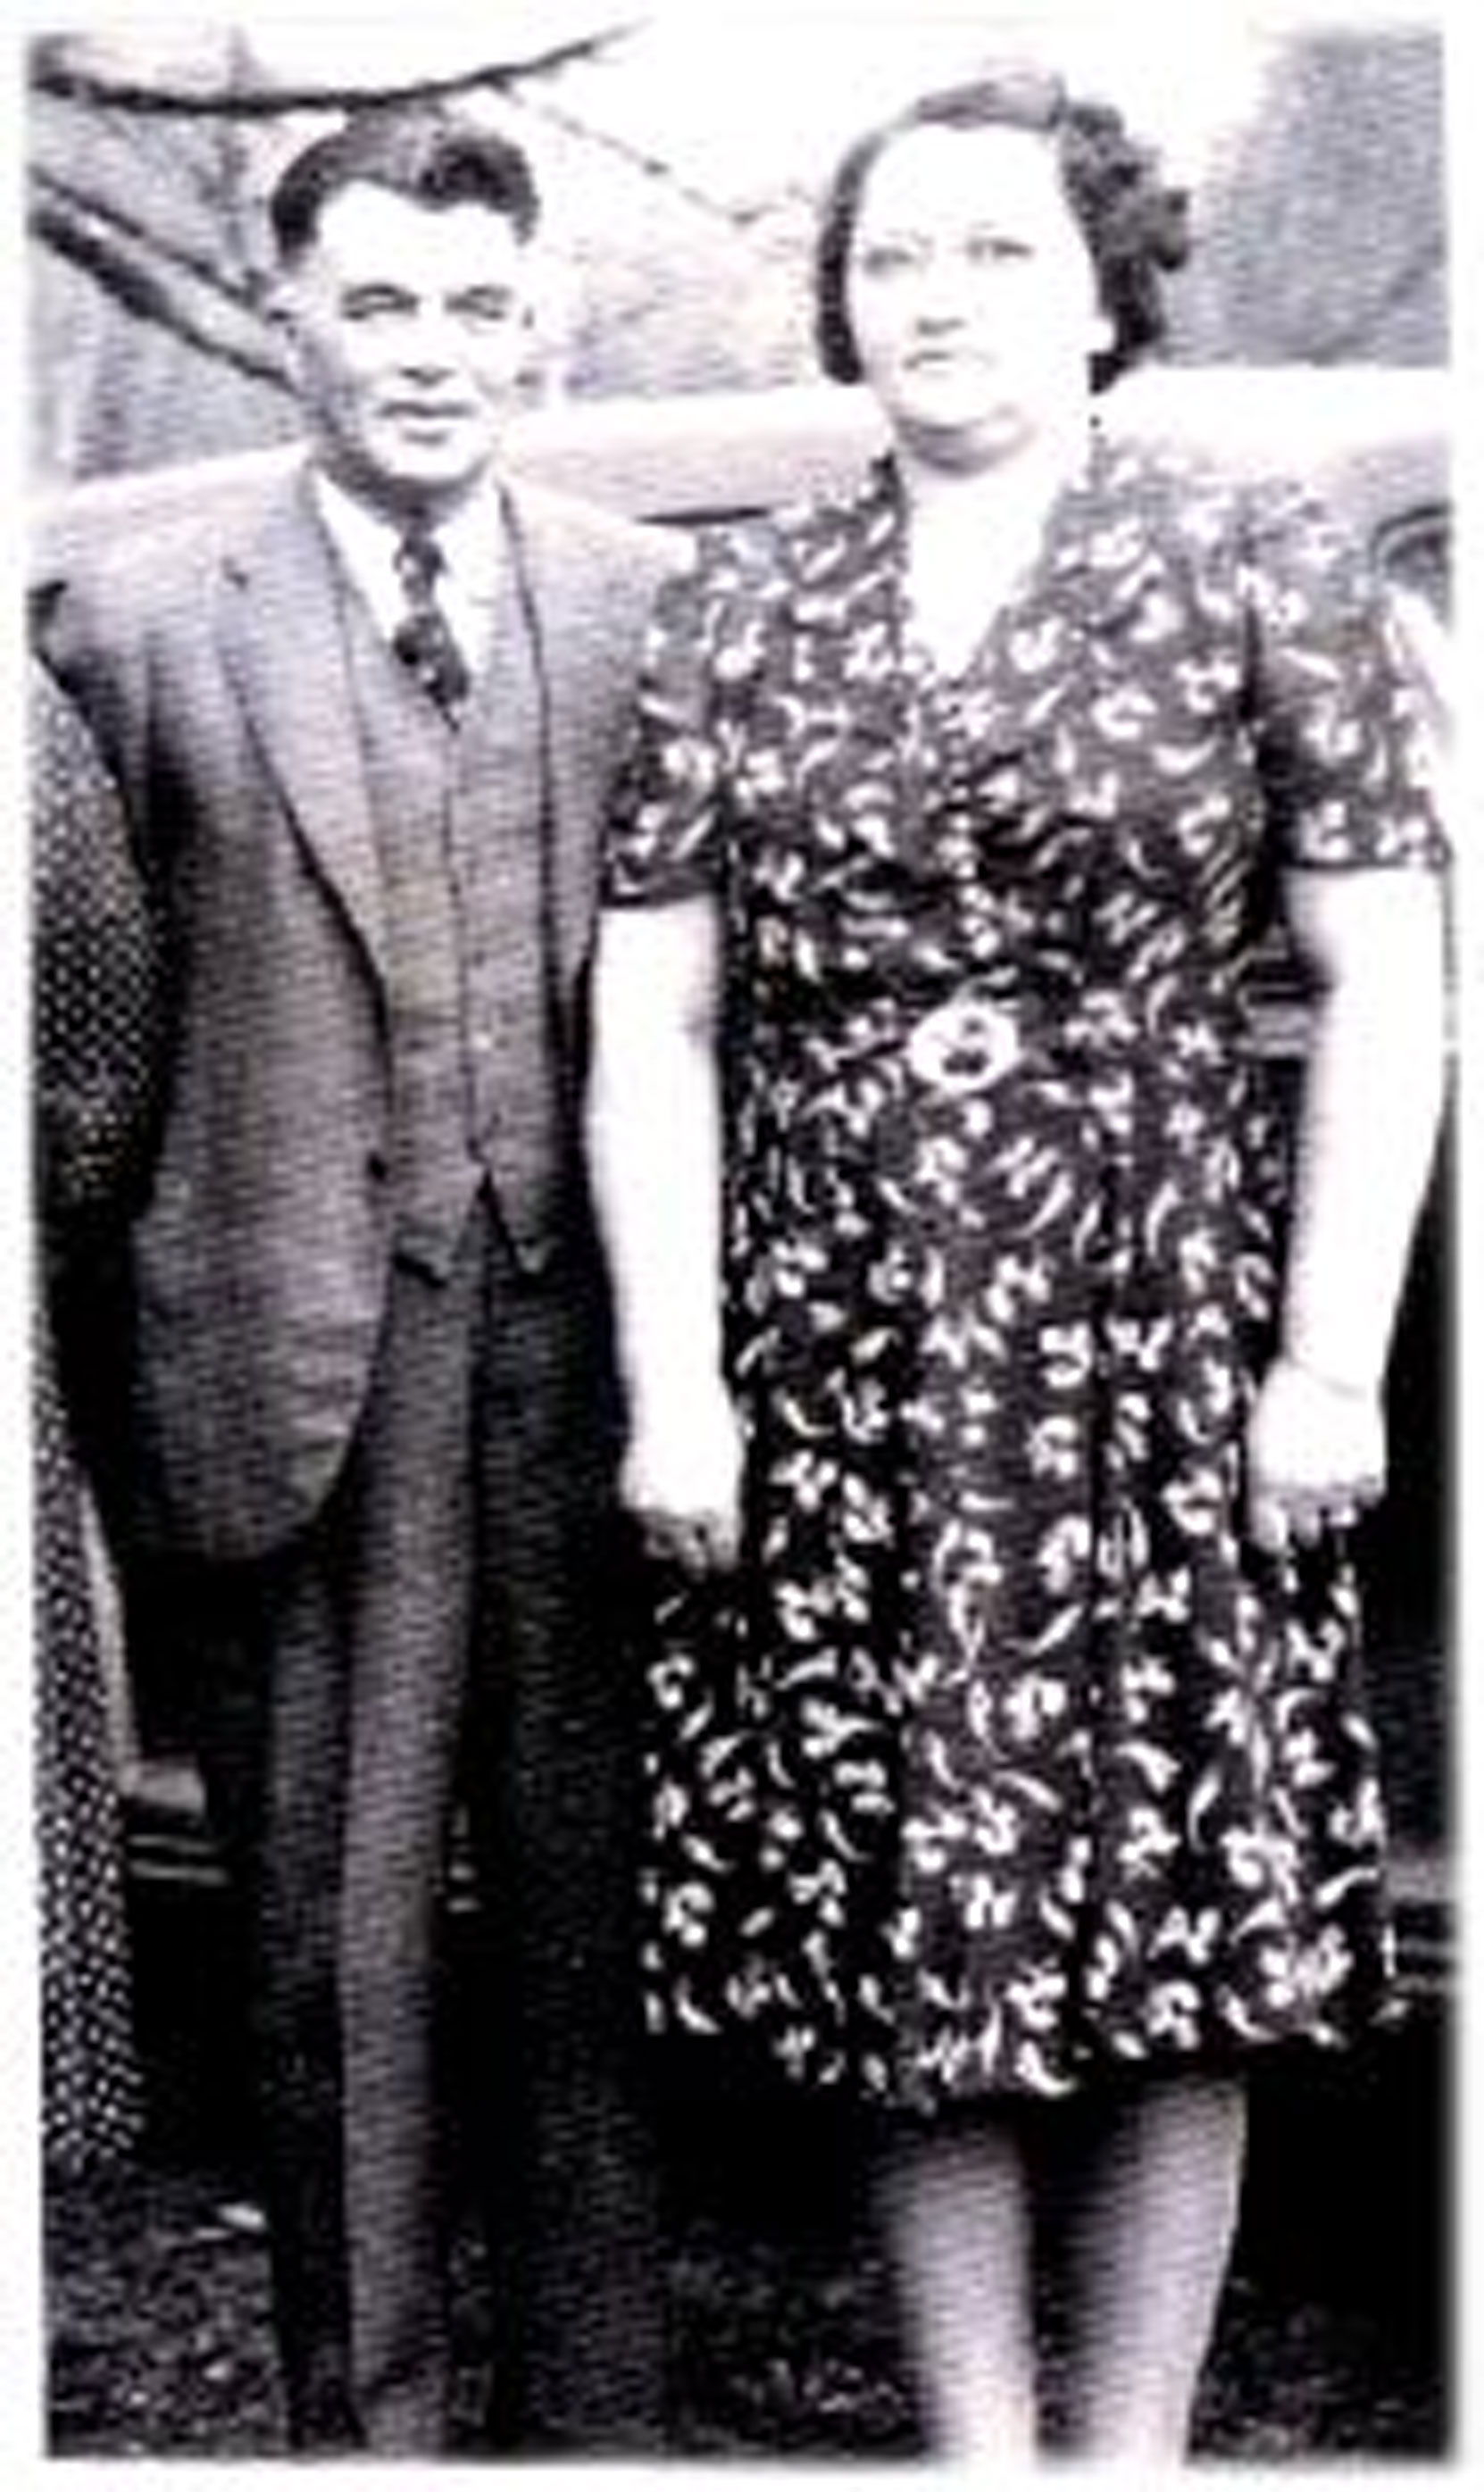 Gustav Edward Bergman and his wife Laura (nee Smith), circa 1930's (photo: https://smithfamhis.blogspot.com/2017/01/laura-emily-smith-1906-1972.html )